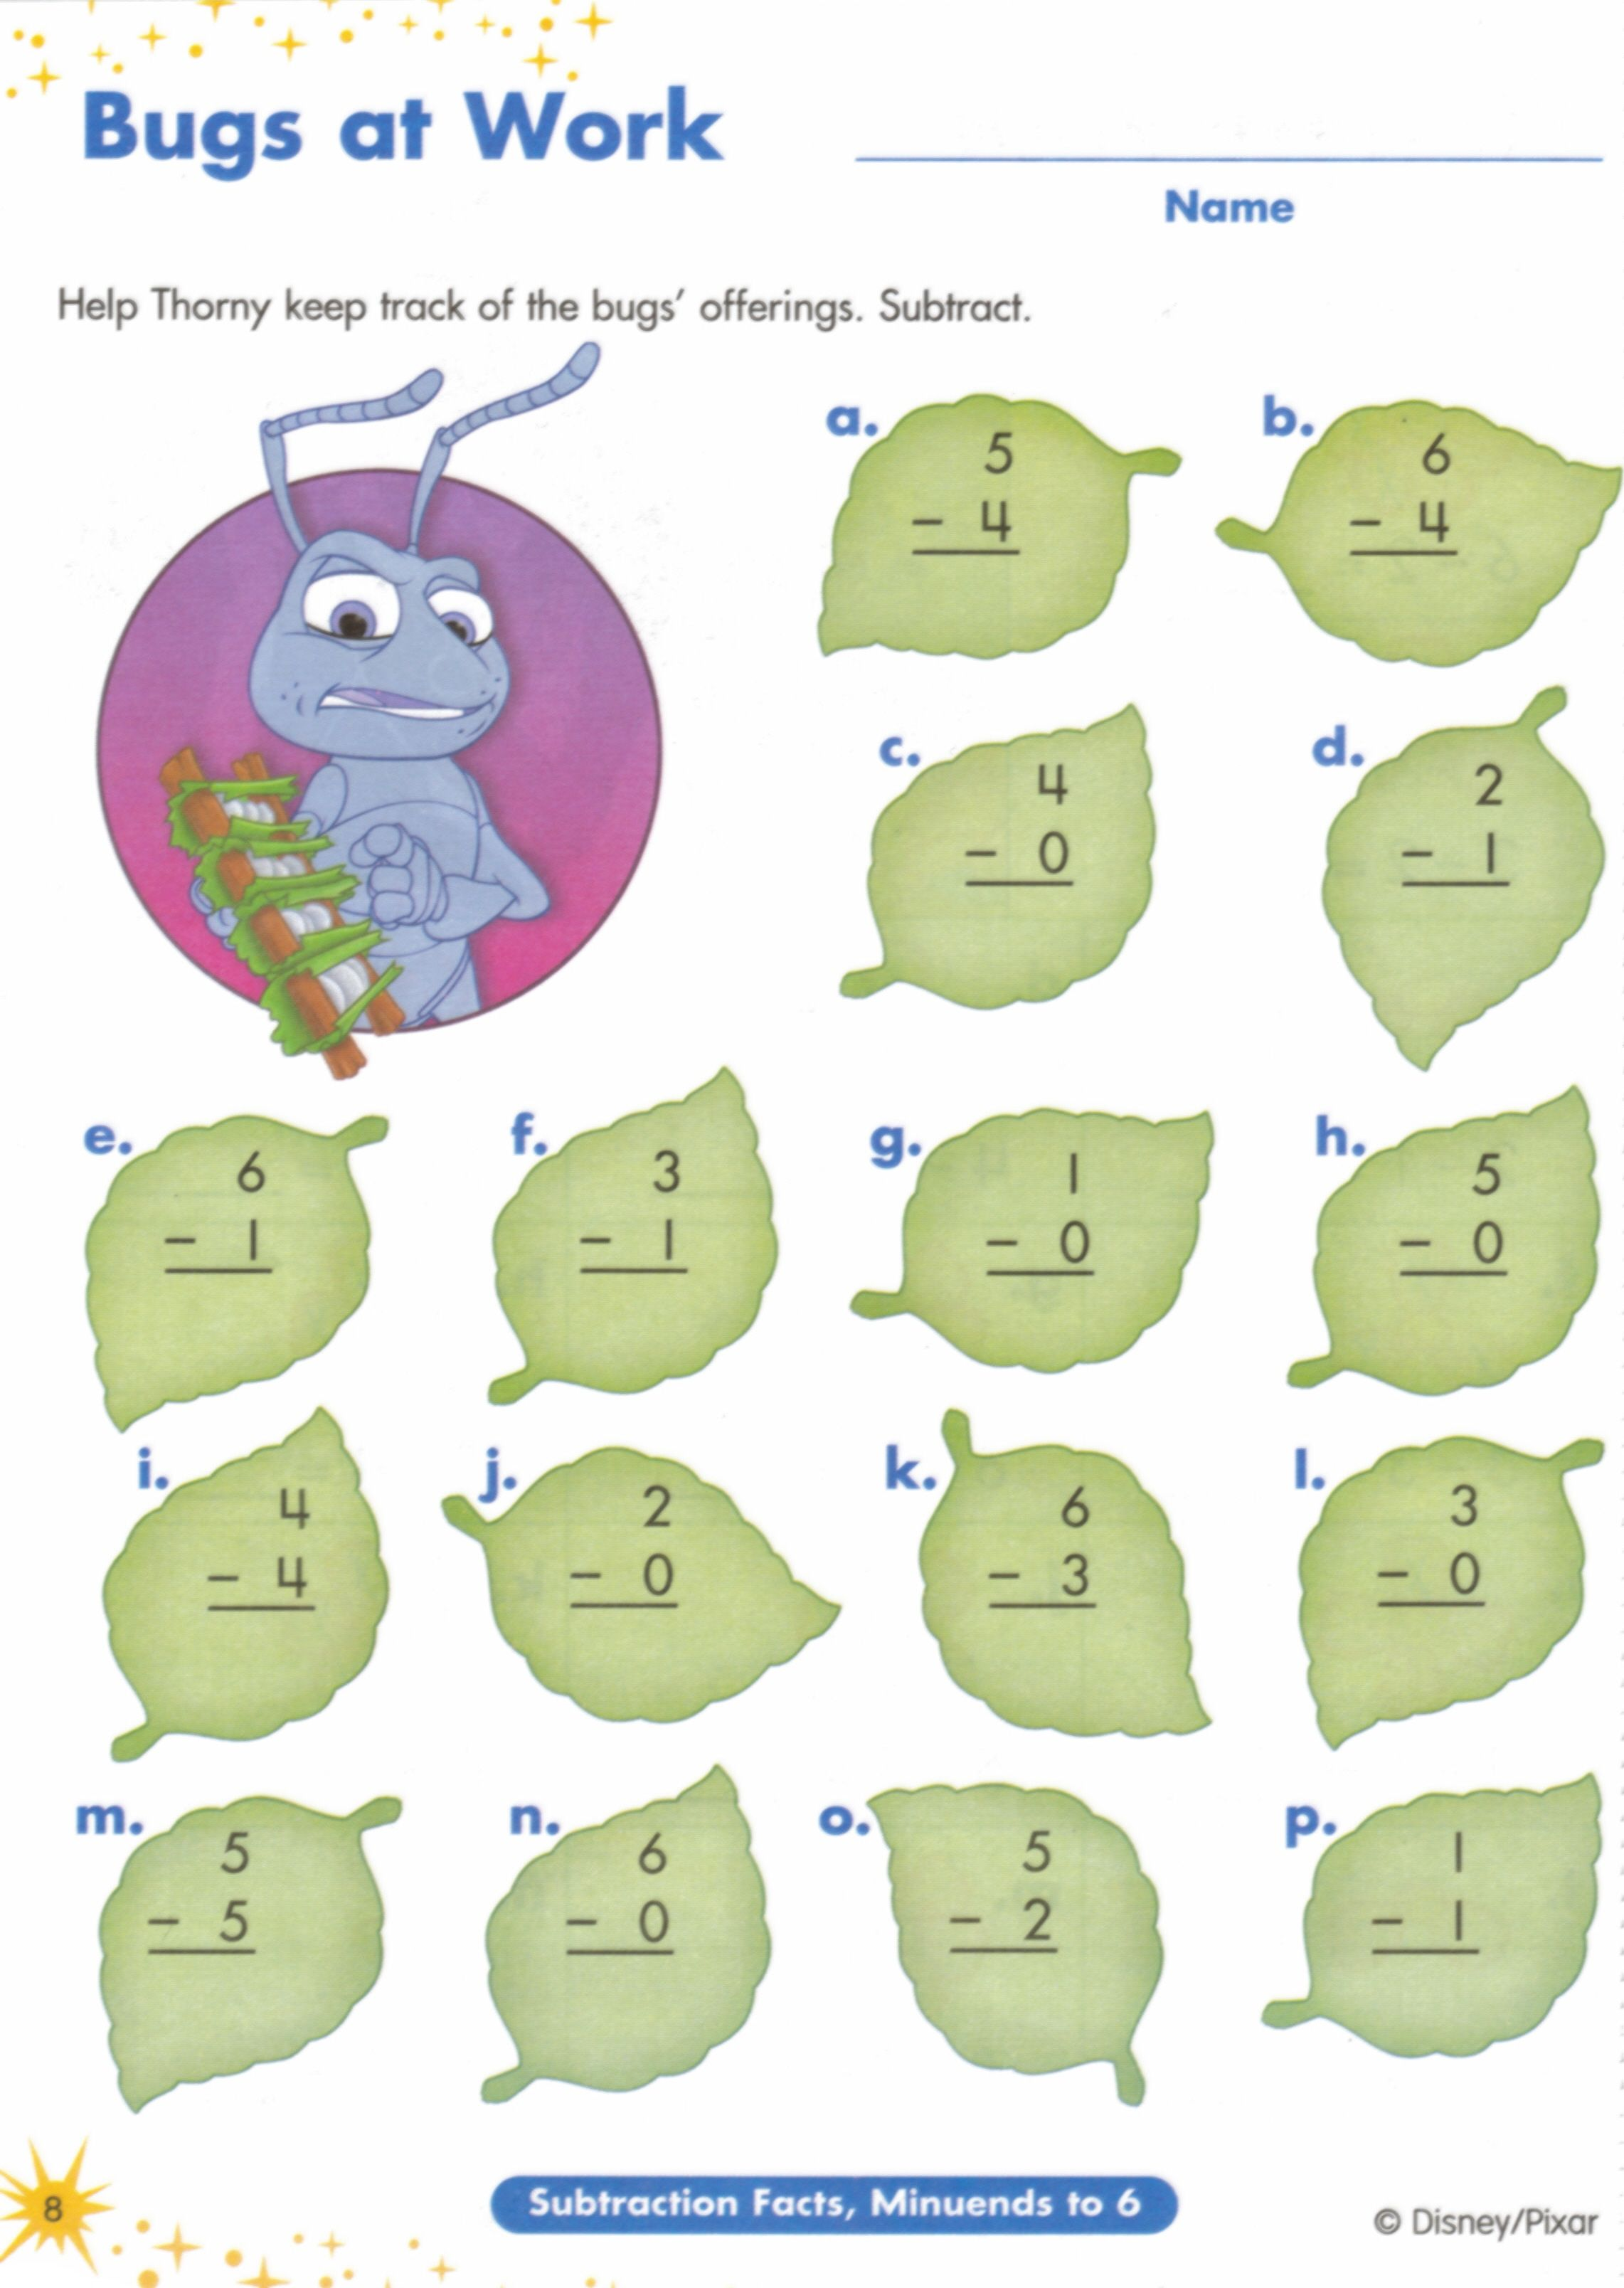 Proatmealus  Outstanding  Images About Worksheets On Pinterest  Fun Facts For Kids  With Inspiring  Images About Worksheets On Pinterest  Fun Facts For Kids Earth Day Worksheets And Jungles With Easy On The Eye Free Th Grade Math Worksheets Also Th Grade English Worksheets In Addition Counting Coins Worksheet And American Revolution Worksheets As Well As Bill Nye Energy Worksheet Additionally Molarity Worksheet  From Pinterestcom With Proatmealus  Inspiring  Images About Worksheets On Pinterest  Fun Facts For Kids  With Easy On The Eye  Images About Worksheets On Pinterest  Fun Facts For Kids Earth Day Worksheets And Jungles And Outstanding Free Th Grade Math Worksheets Also Th Grade English Worksheets In Addition Counting Coins Worksheet From Pinterestcom